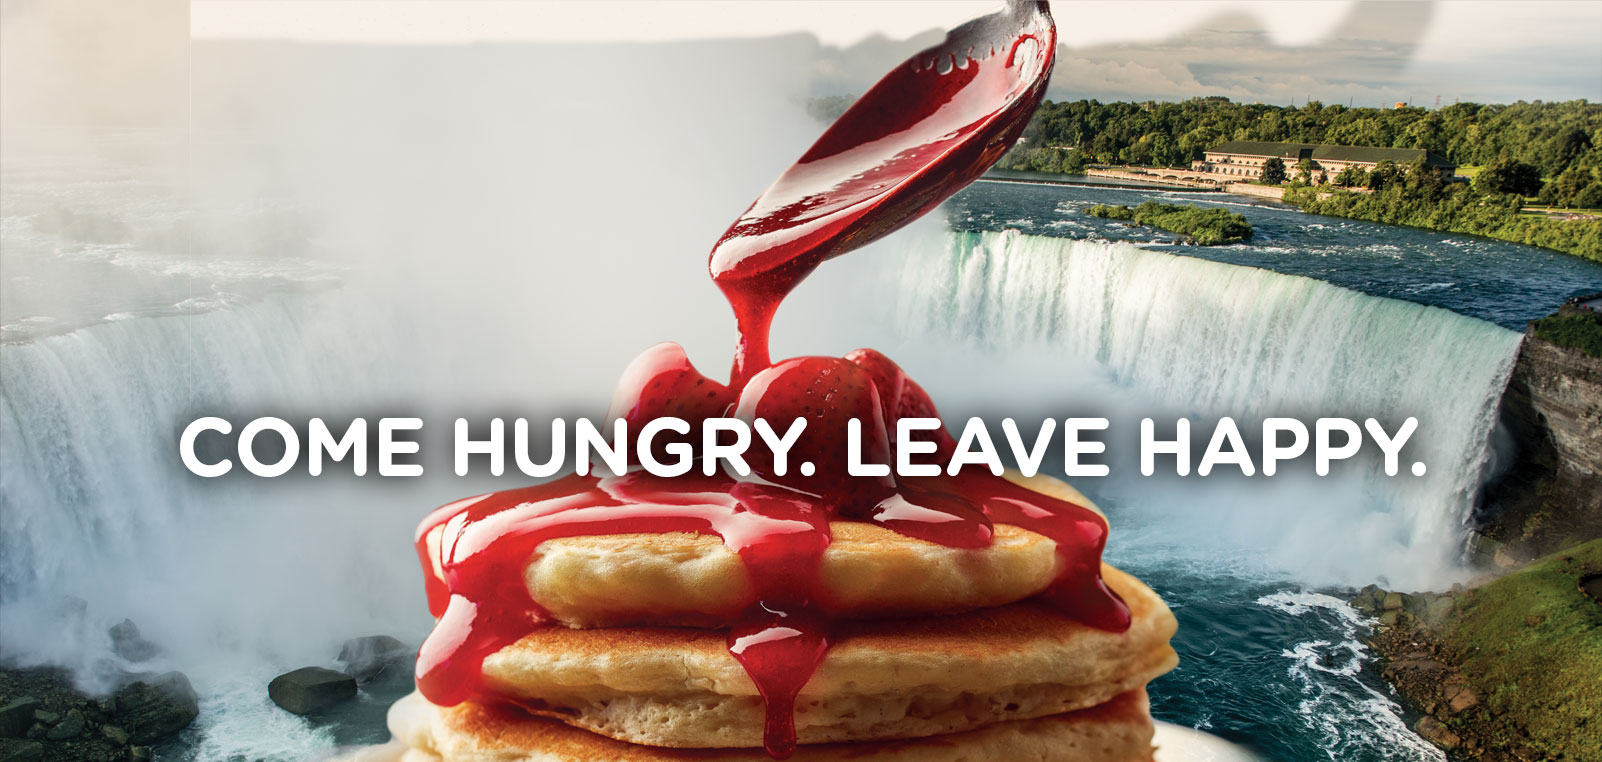 Come Hungry. Leave Happy. - IHOP Restaurant Niagara Falls